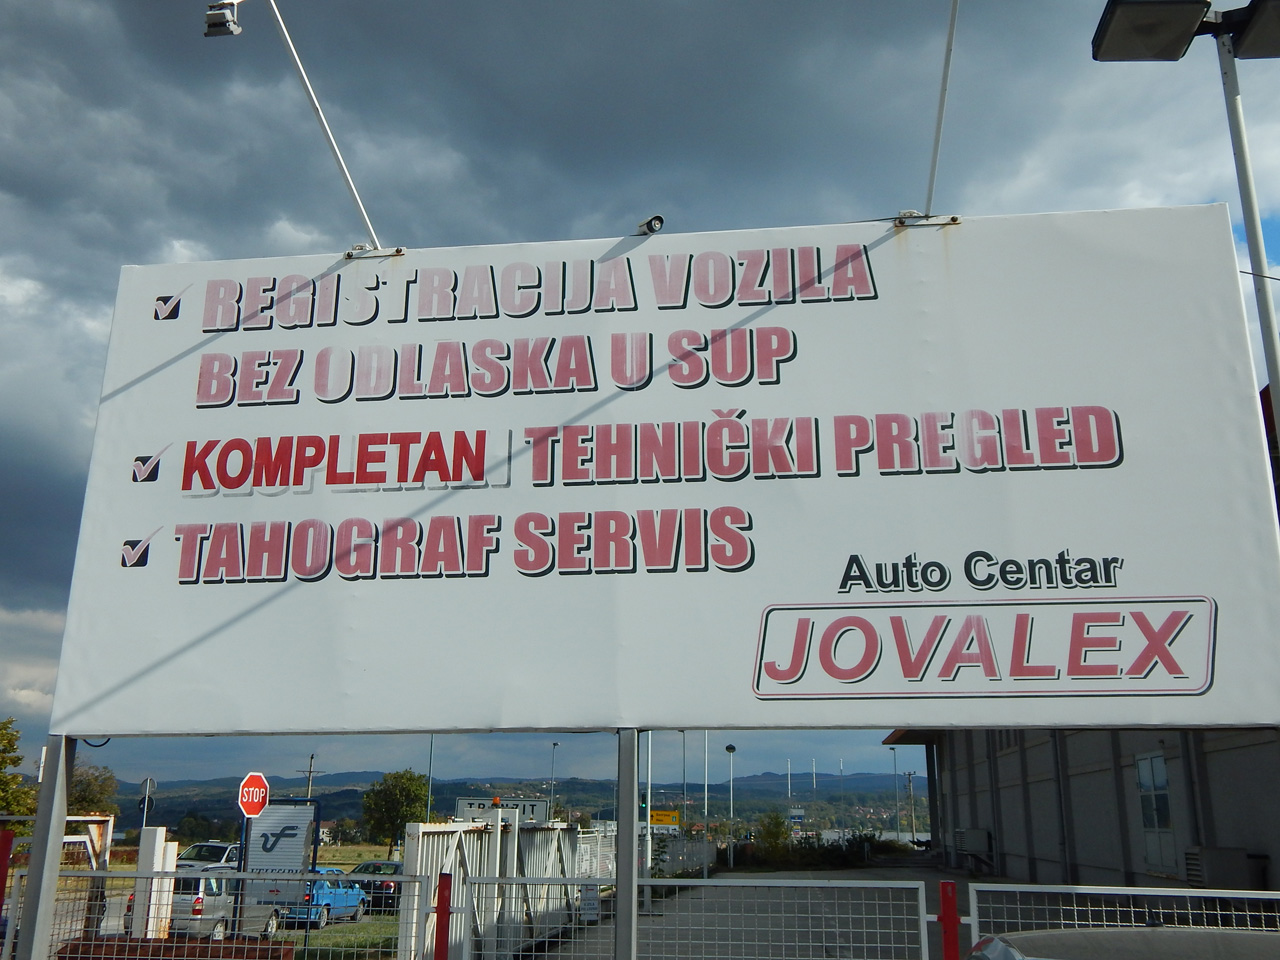 CAR CENTER JOVALEX LTD Second hand car shops Kragujevac - Photo 1